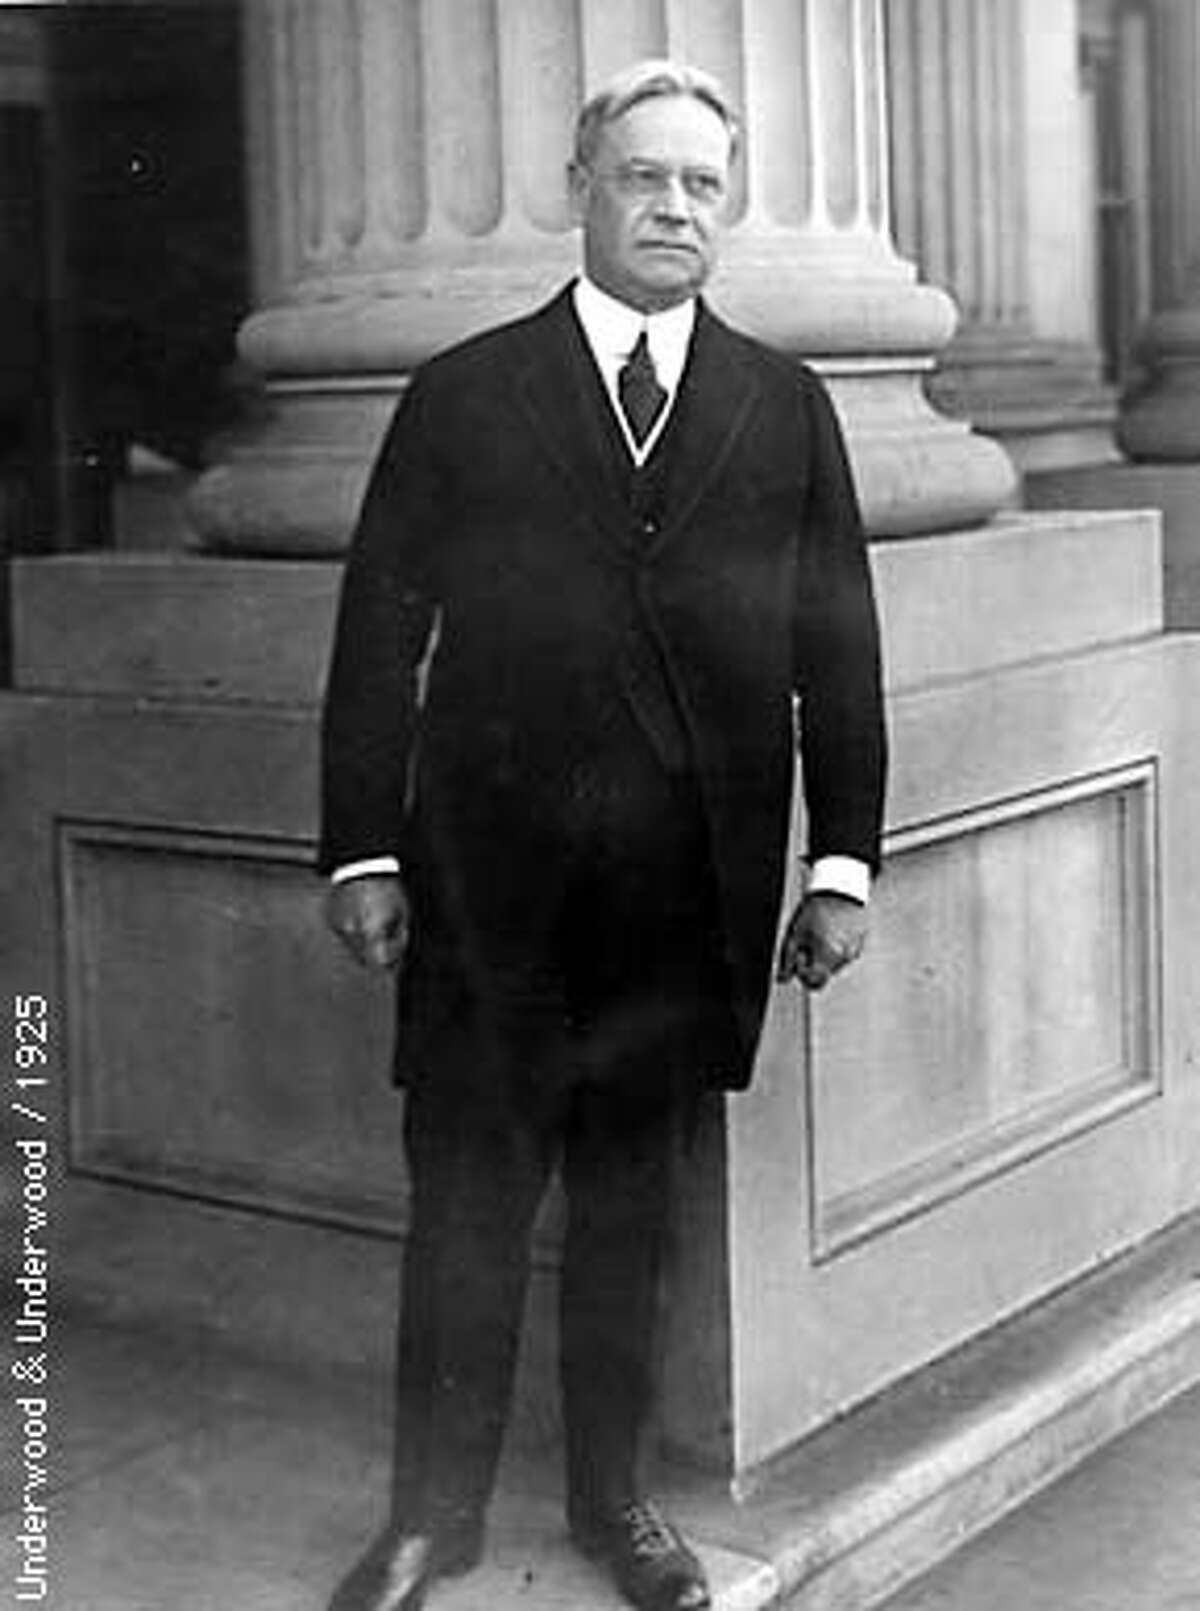 Republican Governor Hiram Johnson introduced the initiative process to break the Southern Pacific railroad's stranglehold on the Legislature. Photo by Underwood & Underwood, 1925